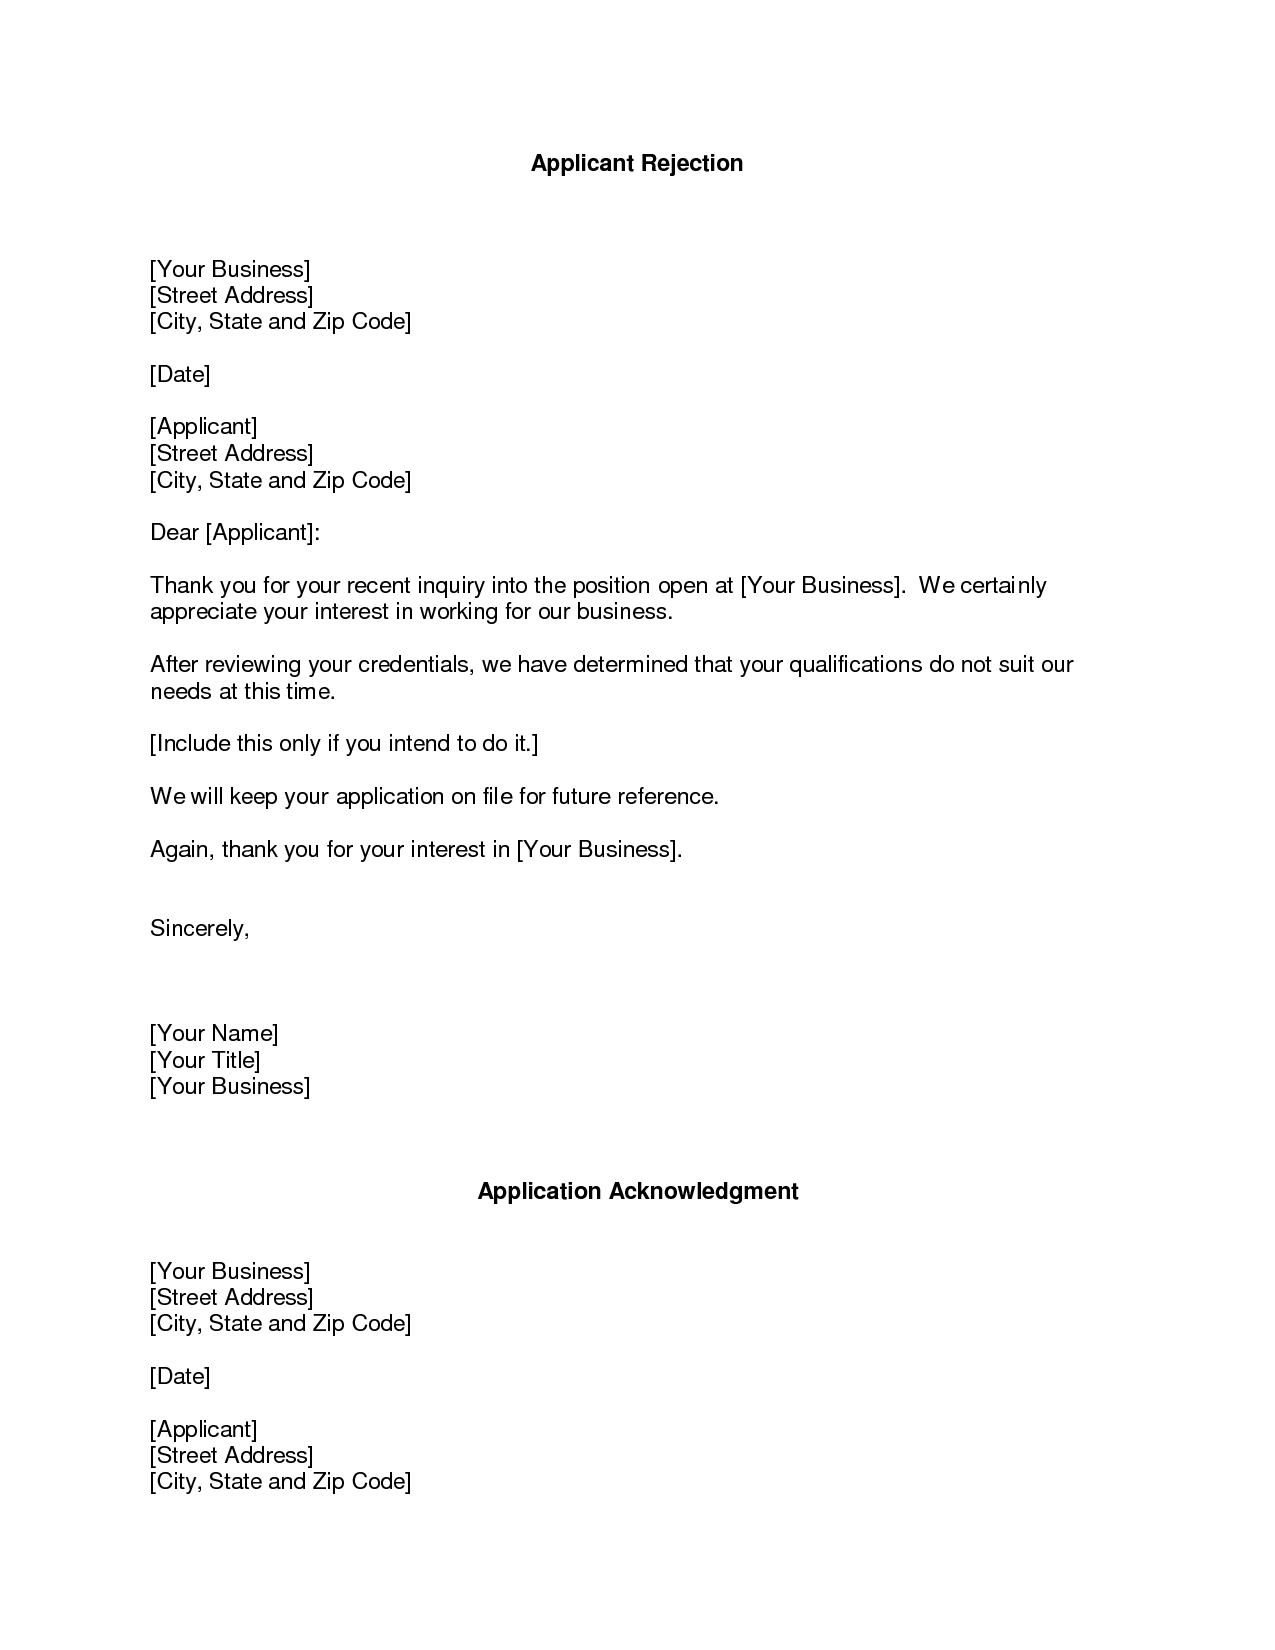 Business rejection letter the rejection letter format is similar business rejection letter the rejection letter format is similar to the business letter format and should be followed correctly altavistaventures Images